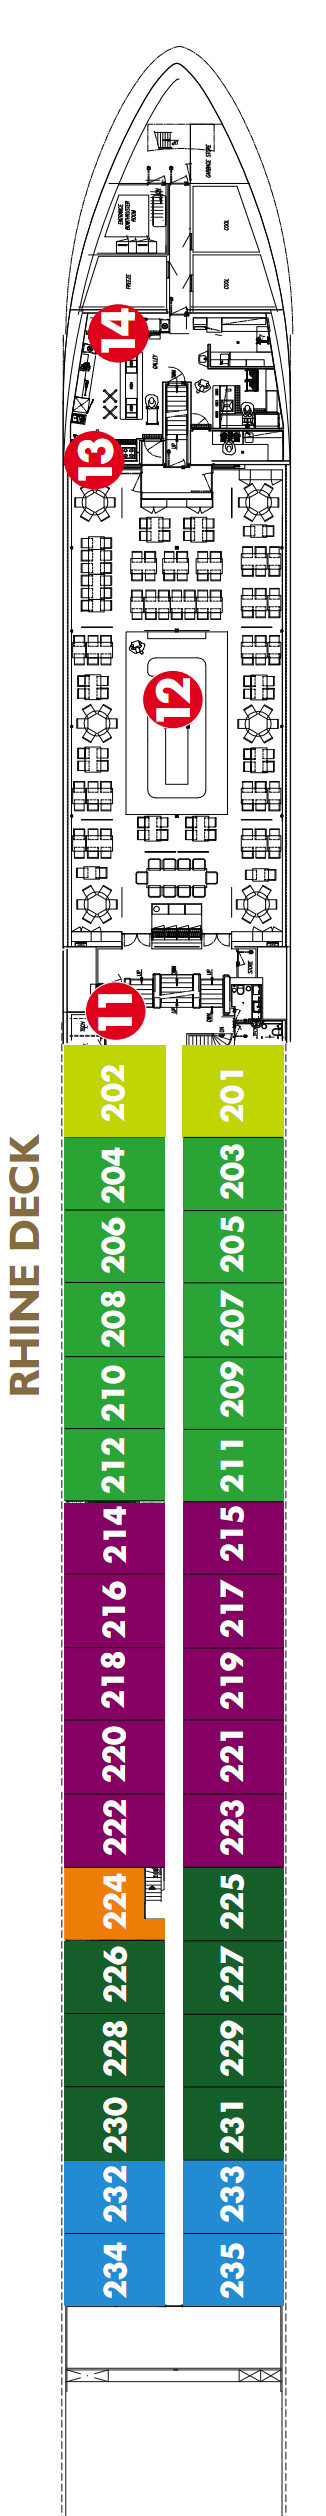 Scenic Emerald Rhine Deck layout